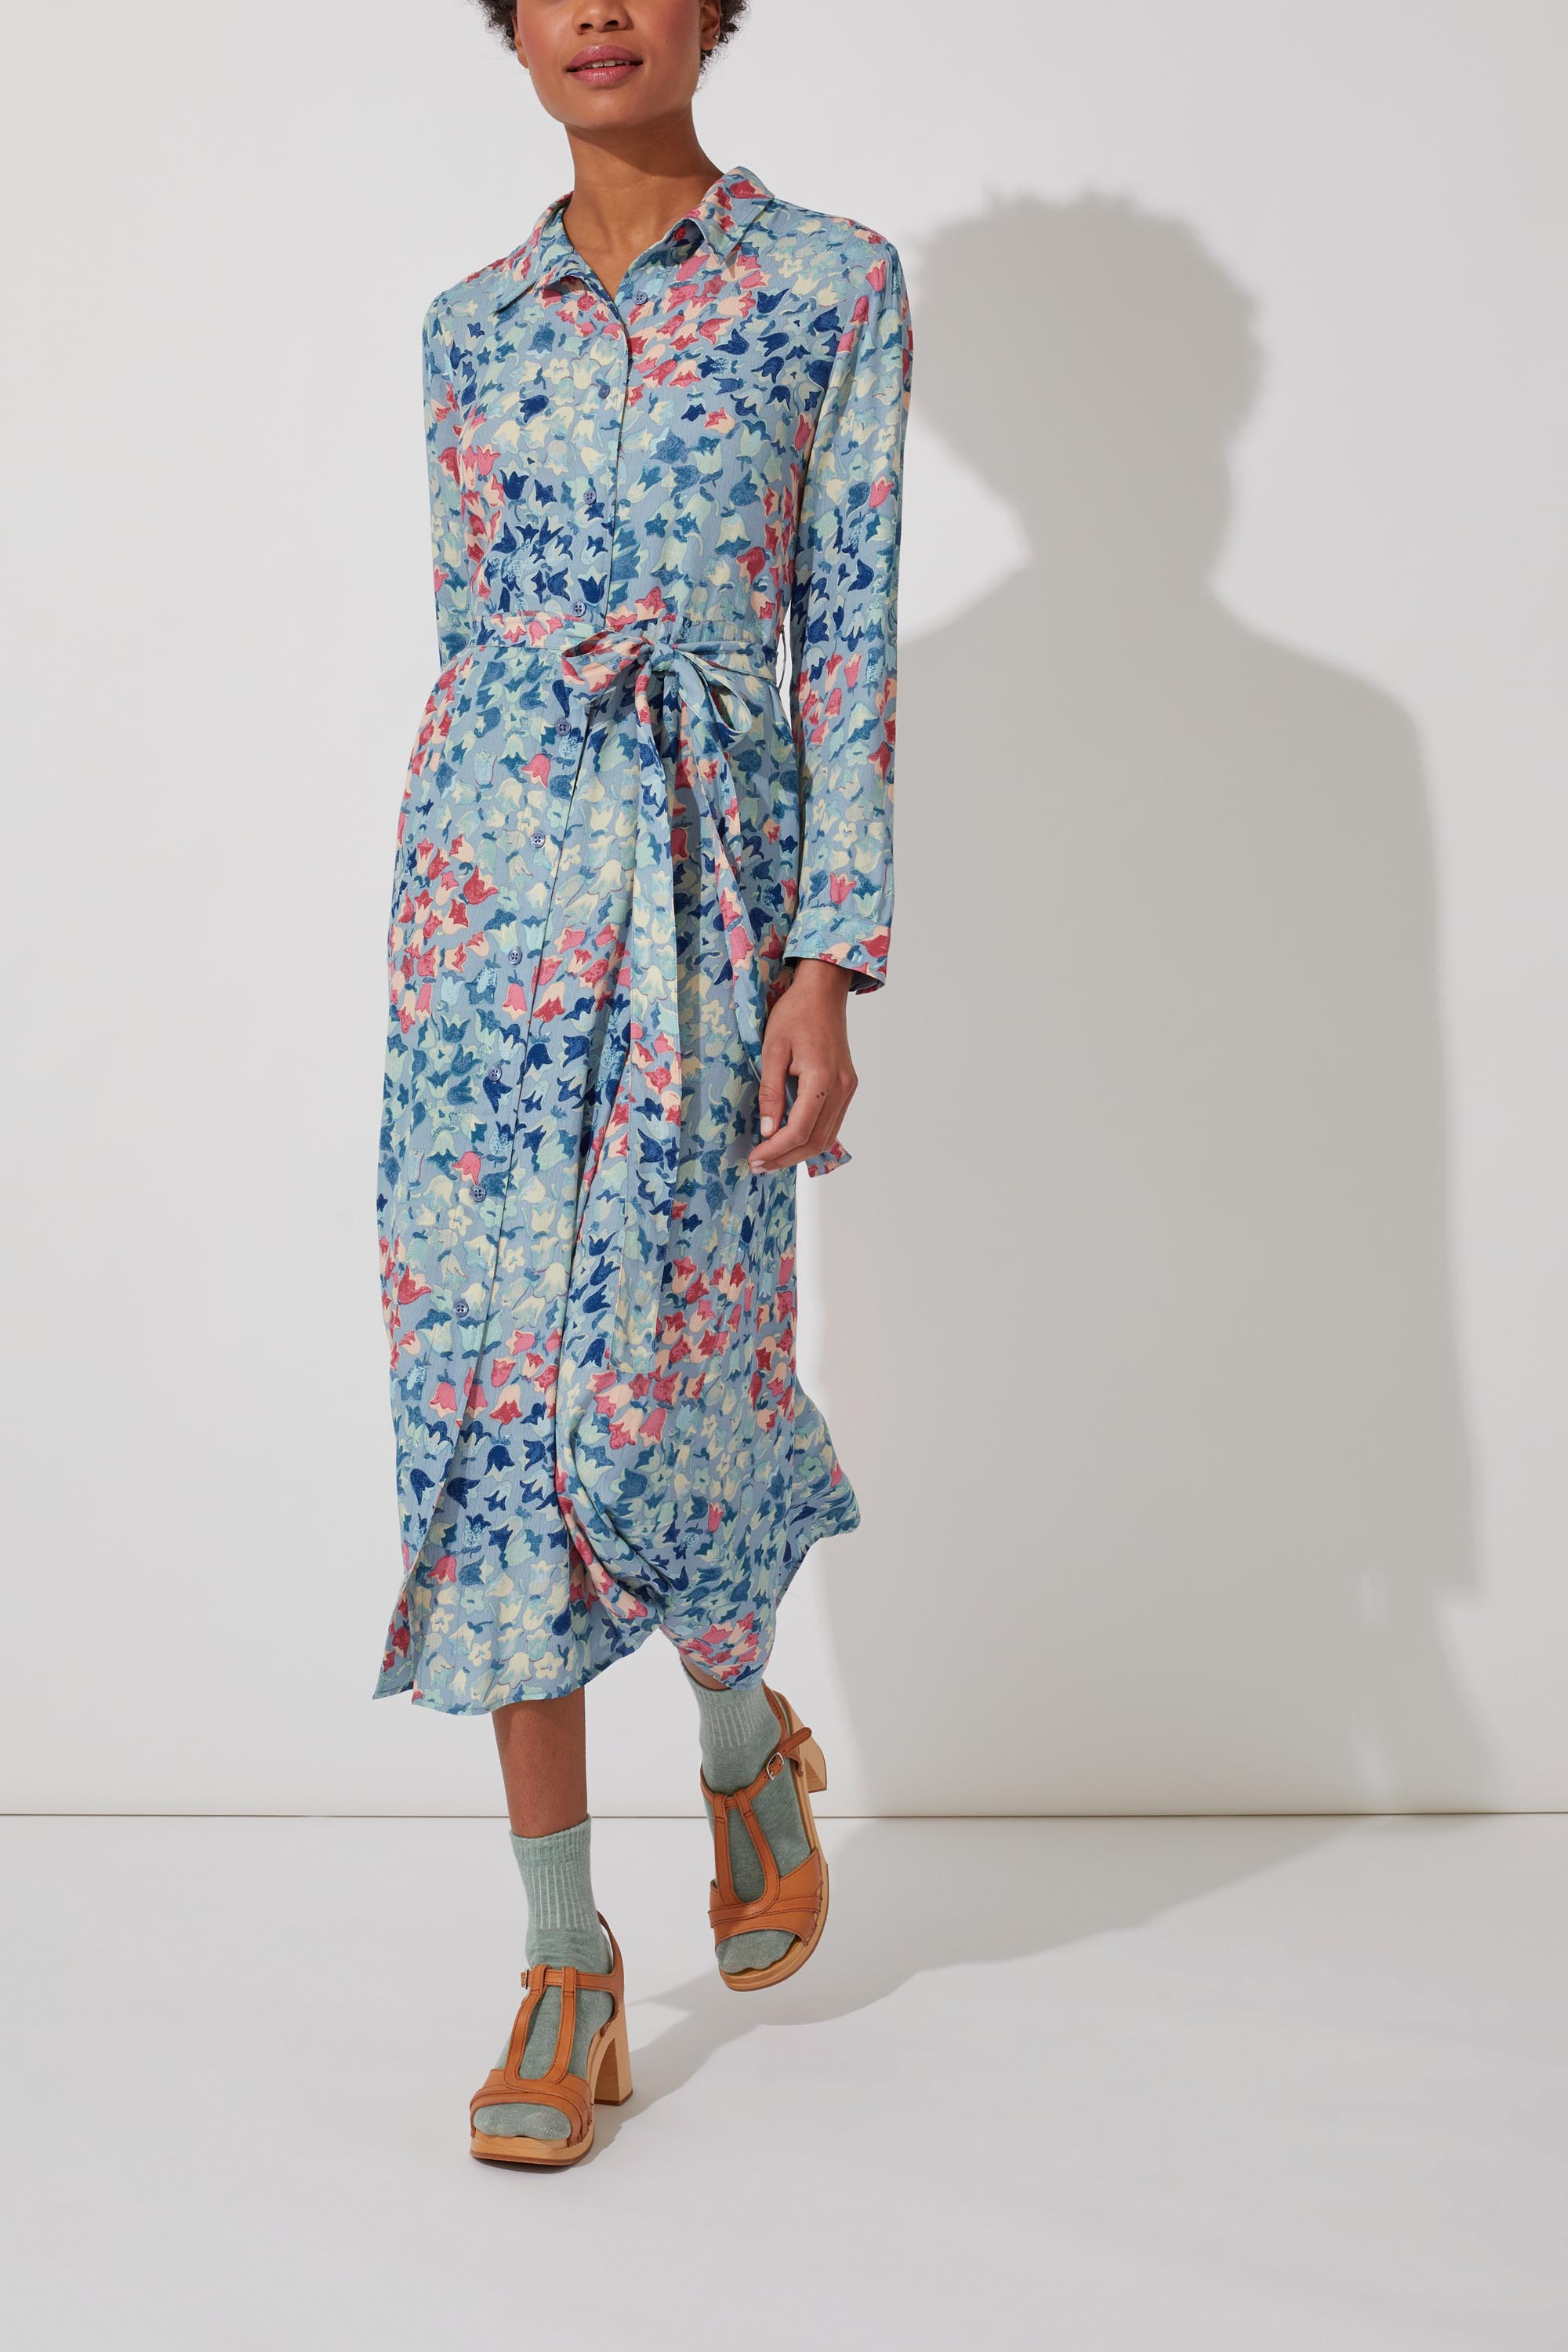 Cath Kidston Painted Bluebell Midi Dress in Dusty Blue, 6